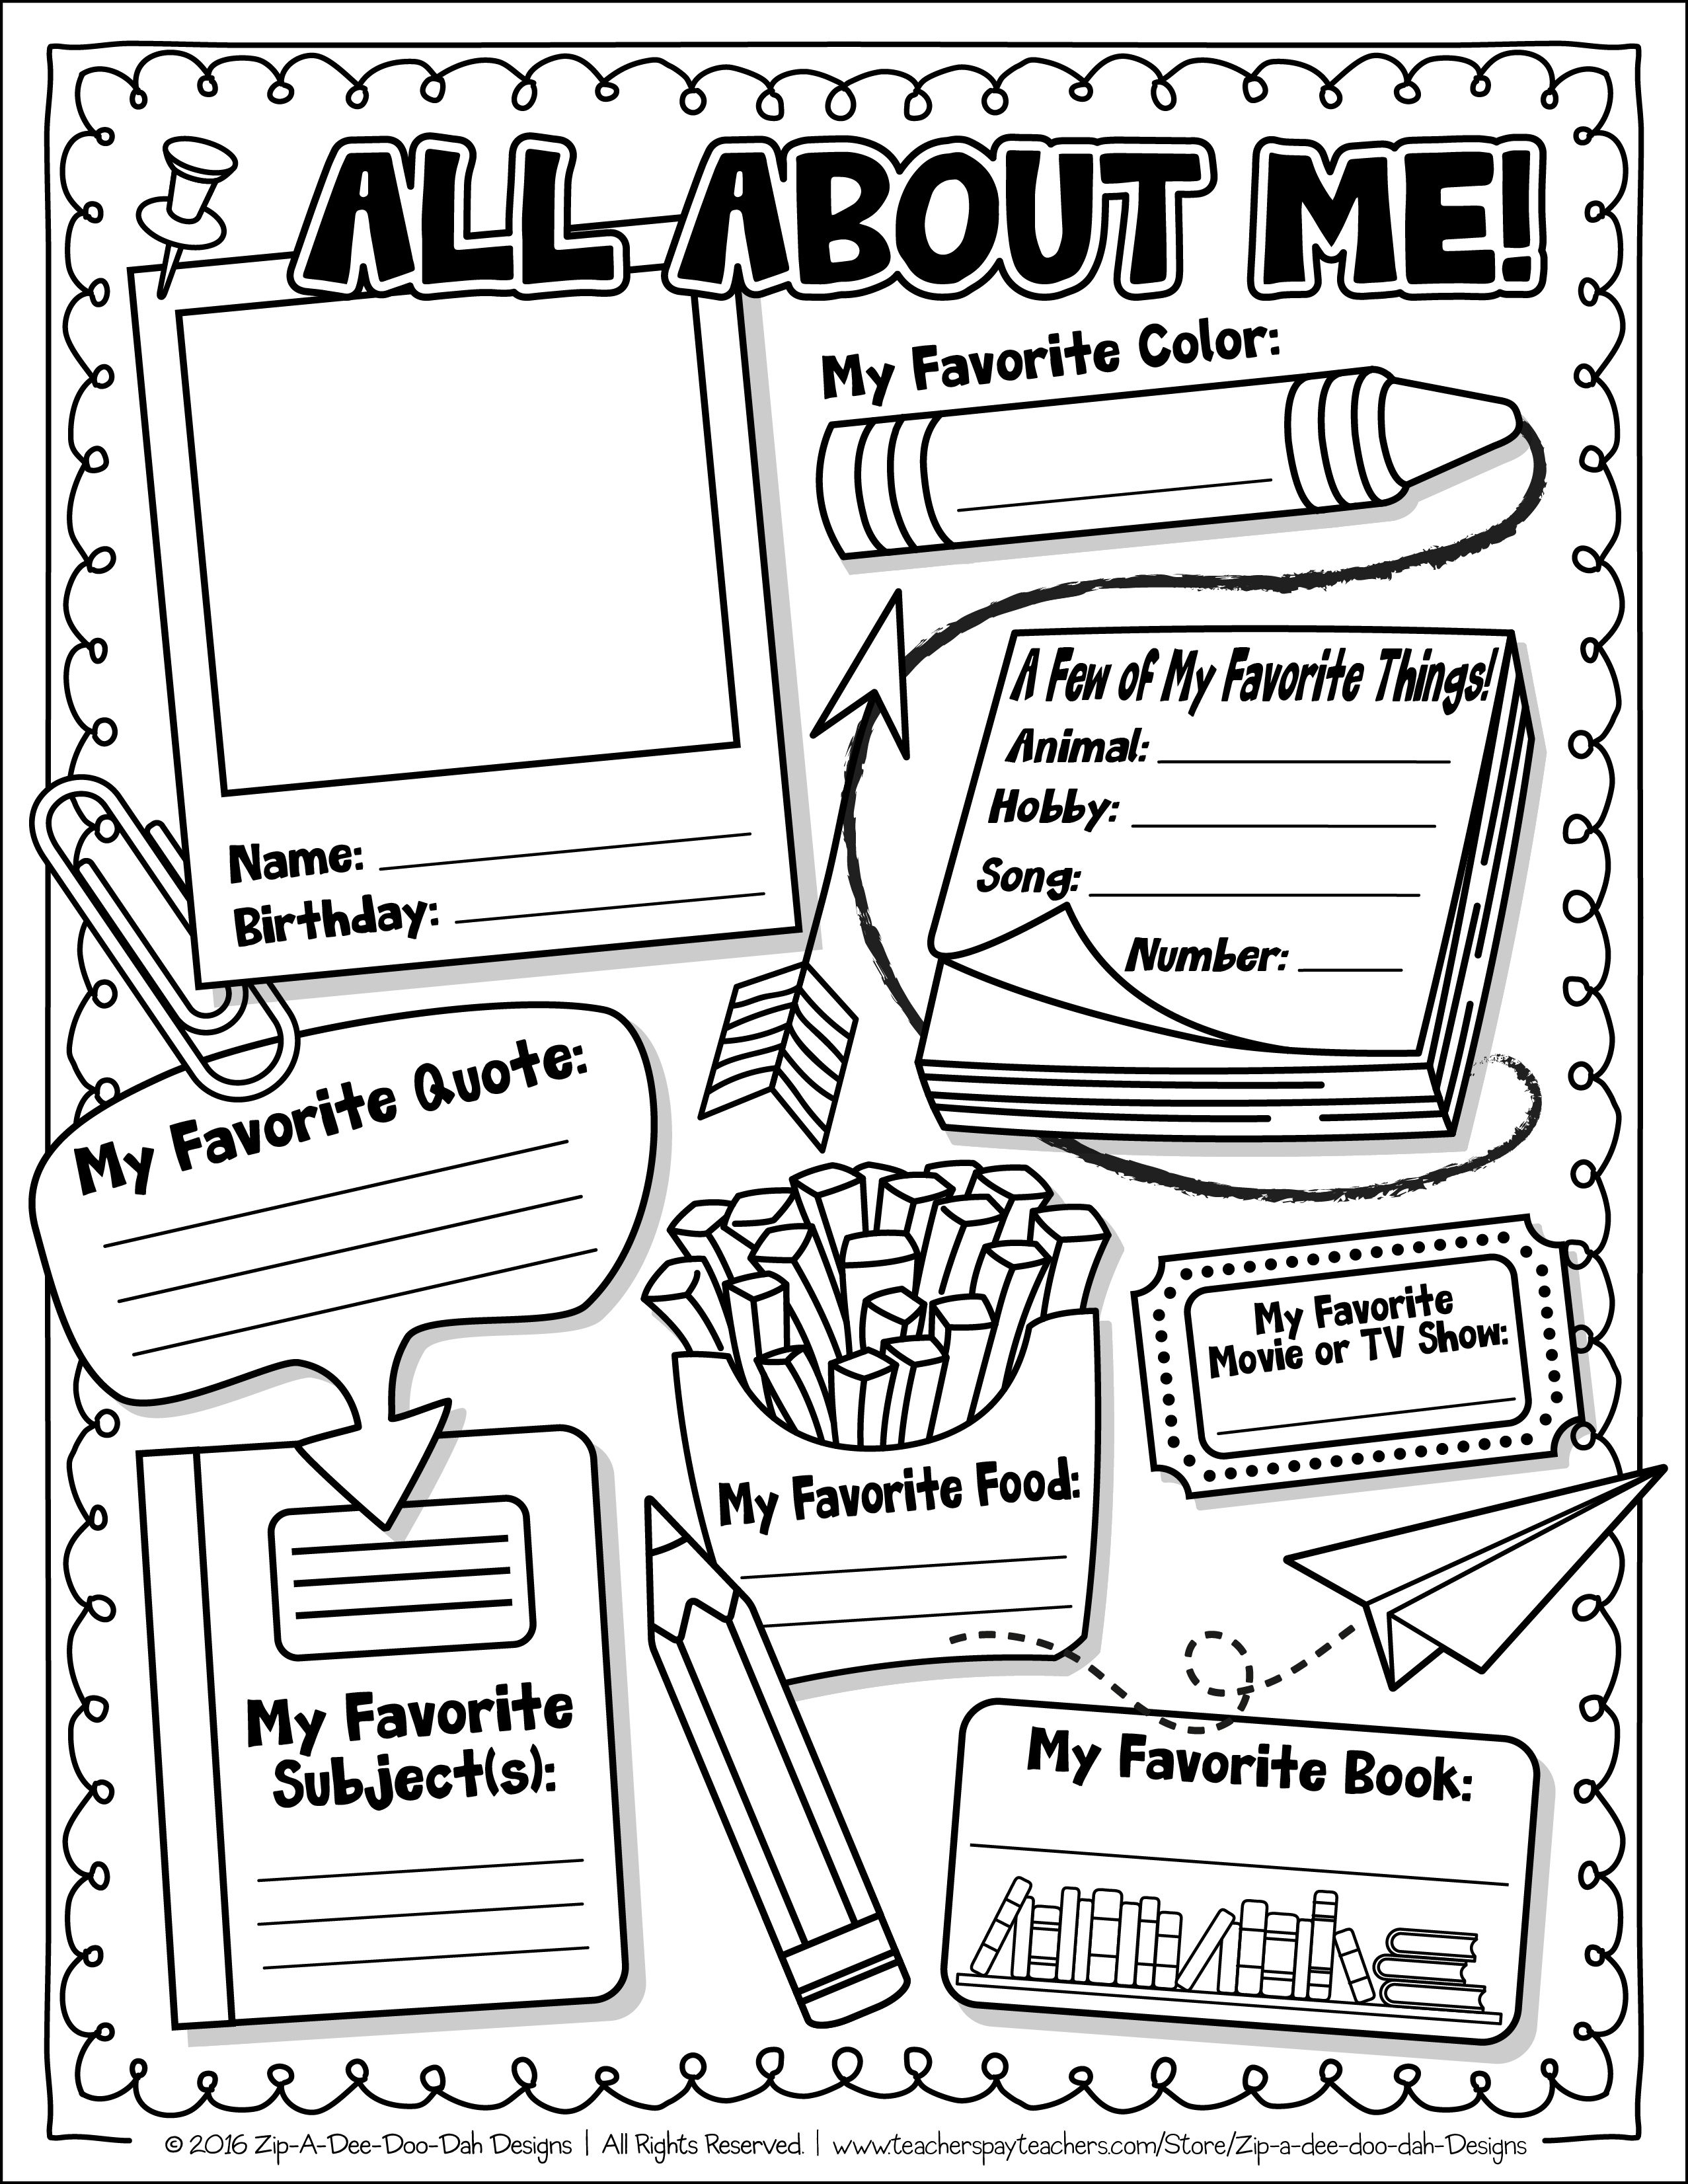 Free All About Me Activity Worksheet Template Zip A Dee